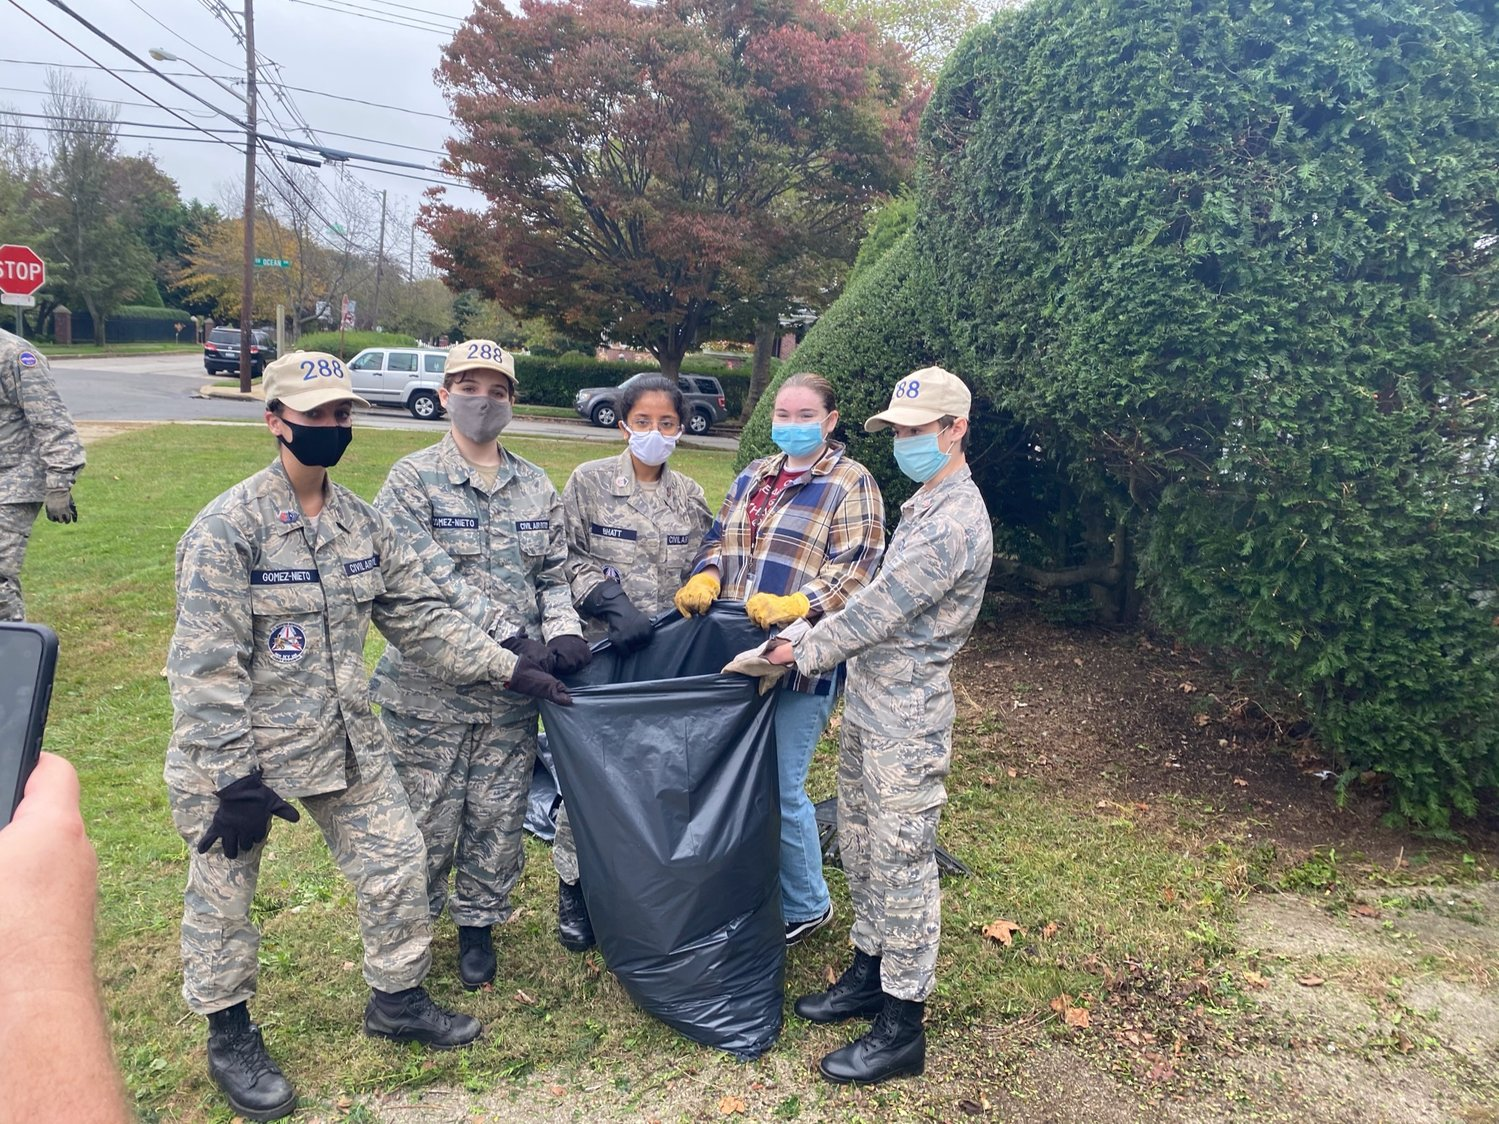 There were roughly 60 volunteers, many of them from the Cadet Program of the U.S. Civil Air Patrol and Freeport High School's Junior Reserve's Officer Training Corps.